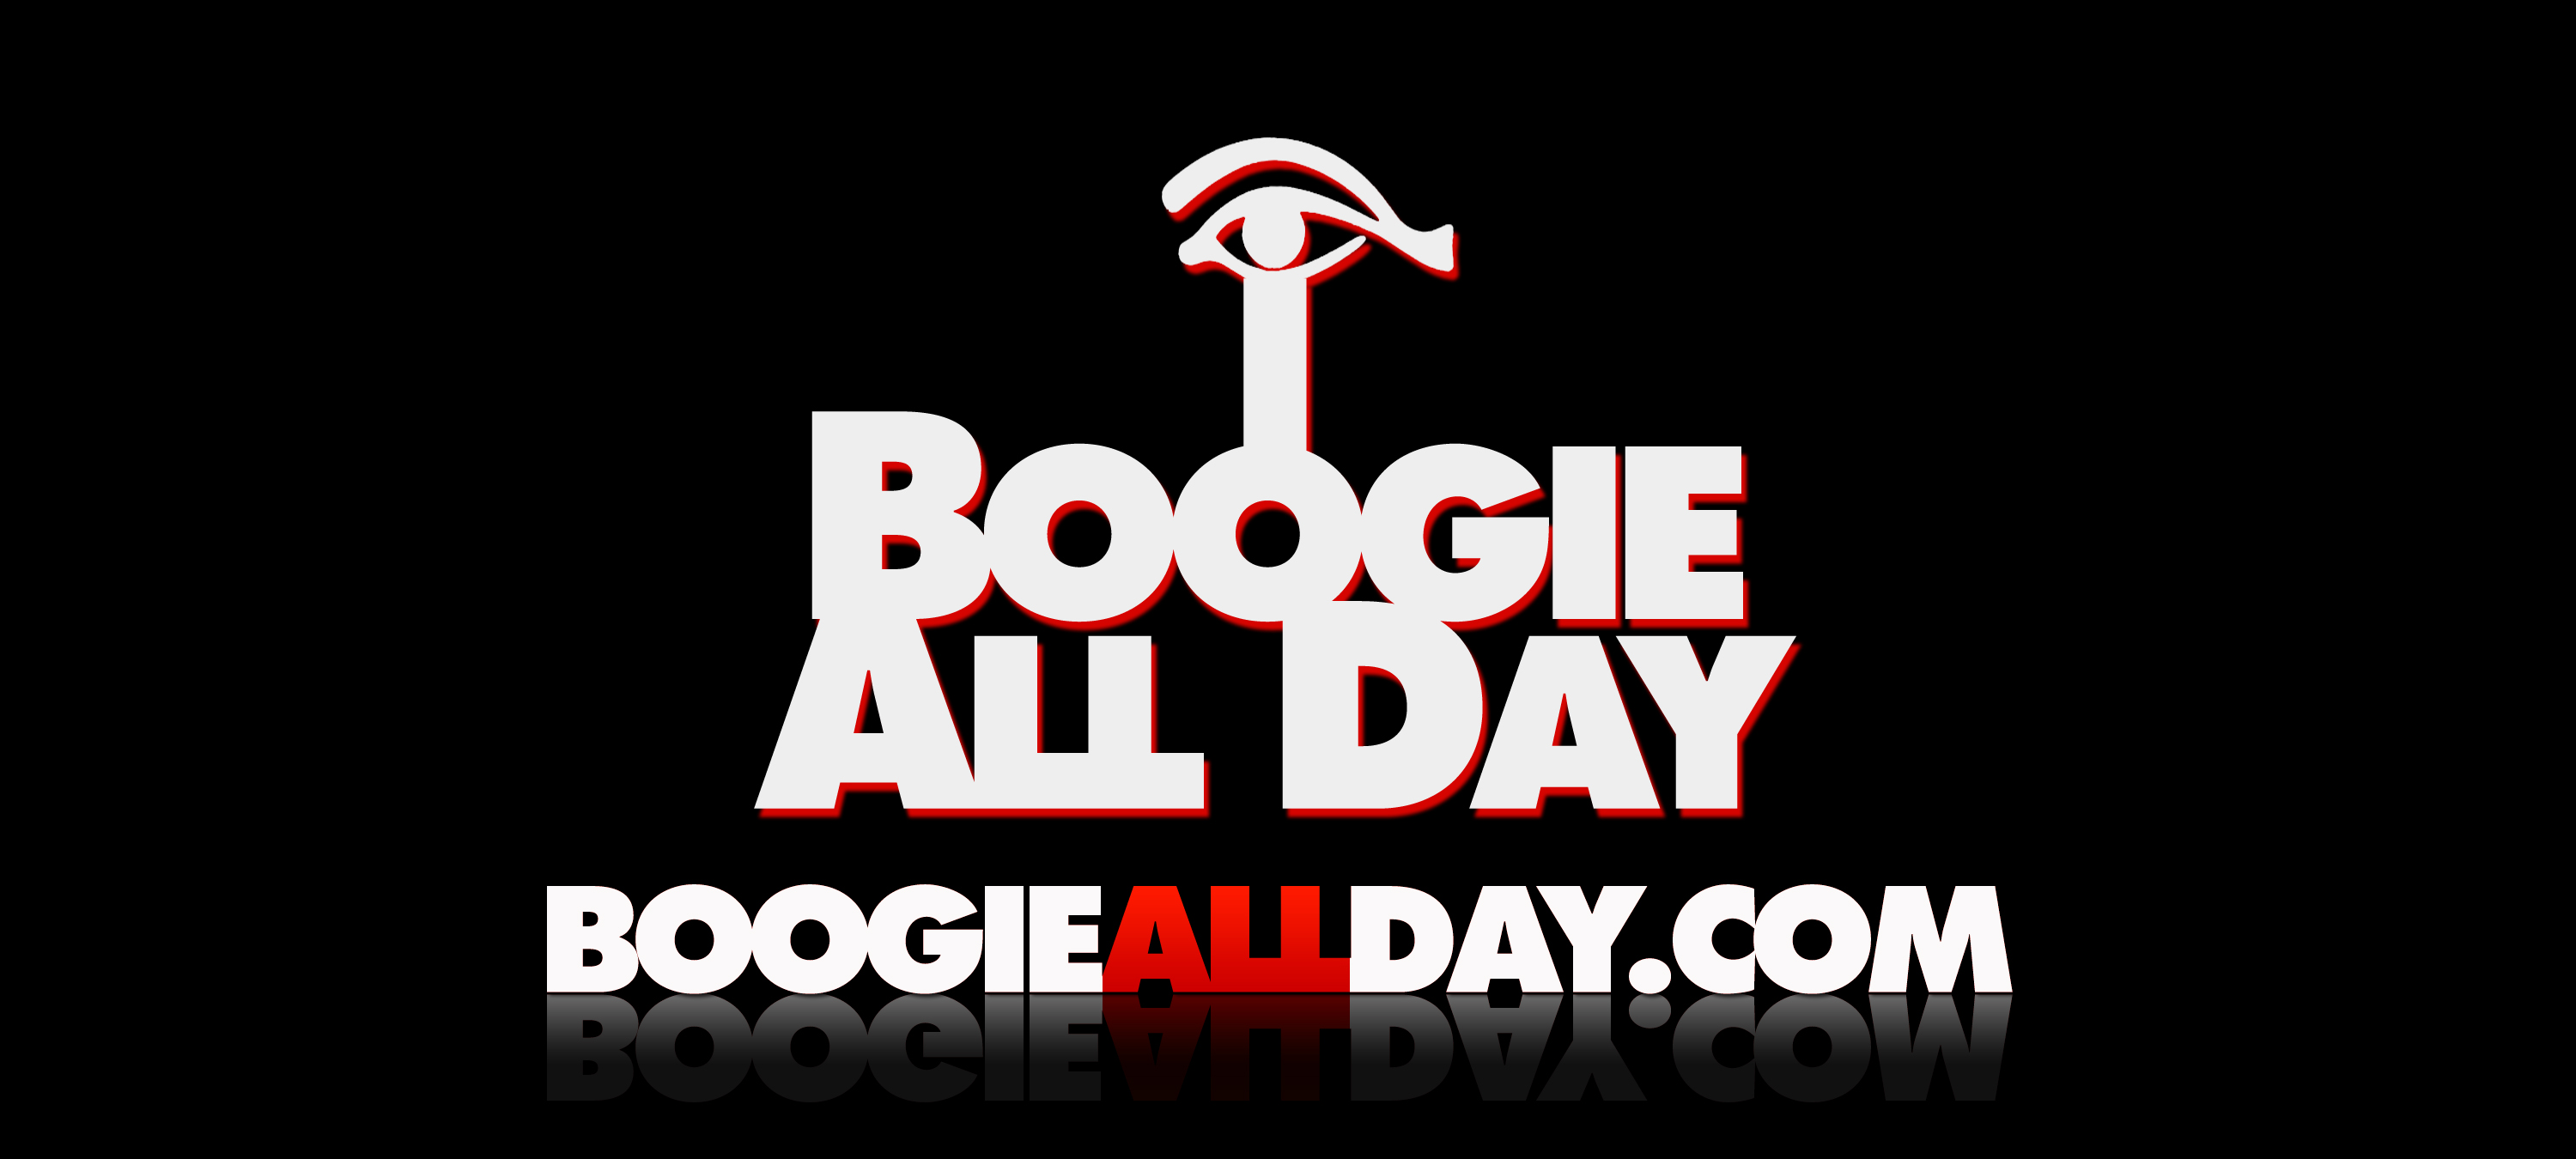 BOOGIE ALL DAY